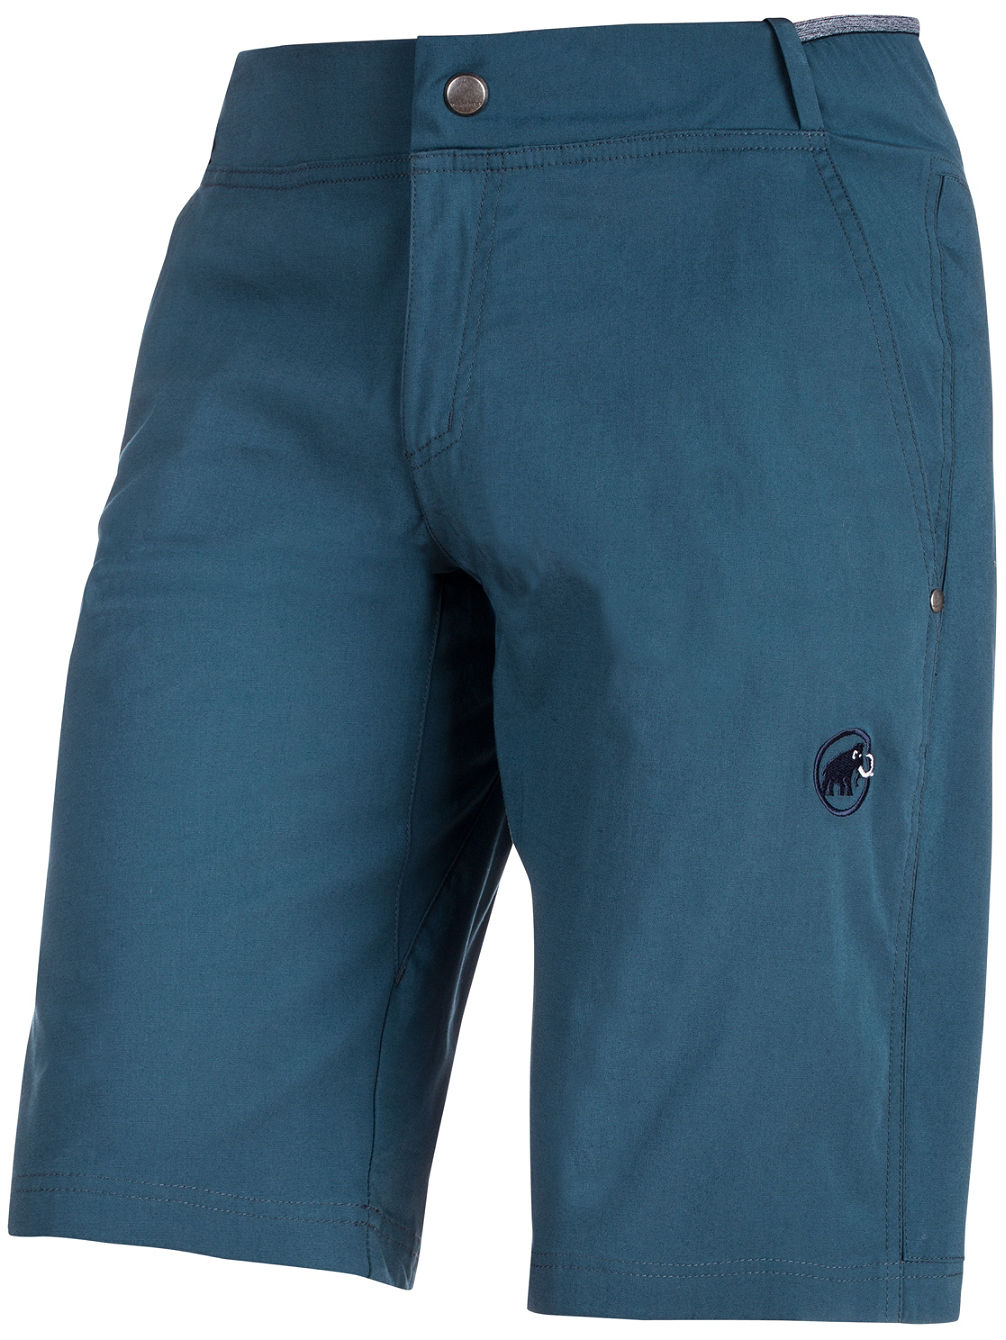 Alnasca Short Outdoorhose